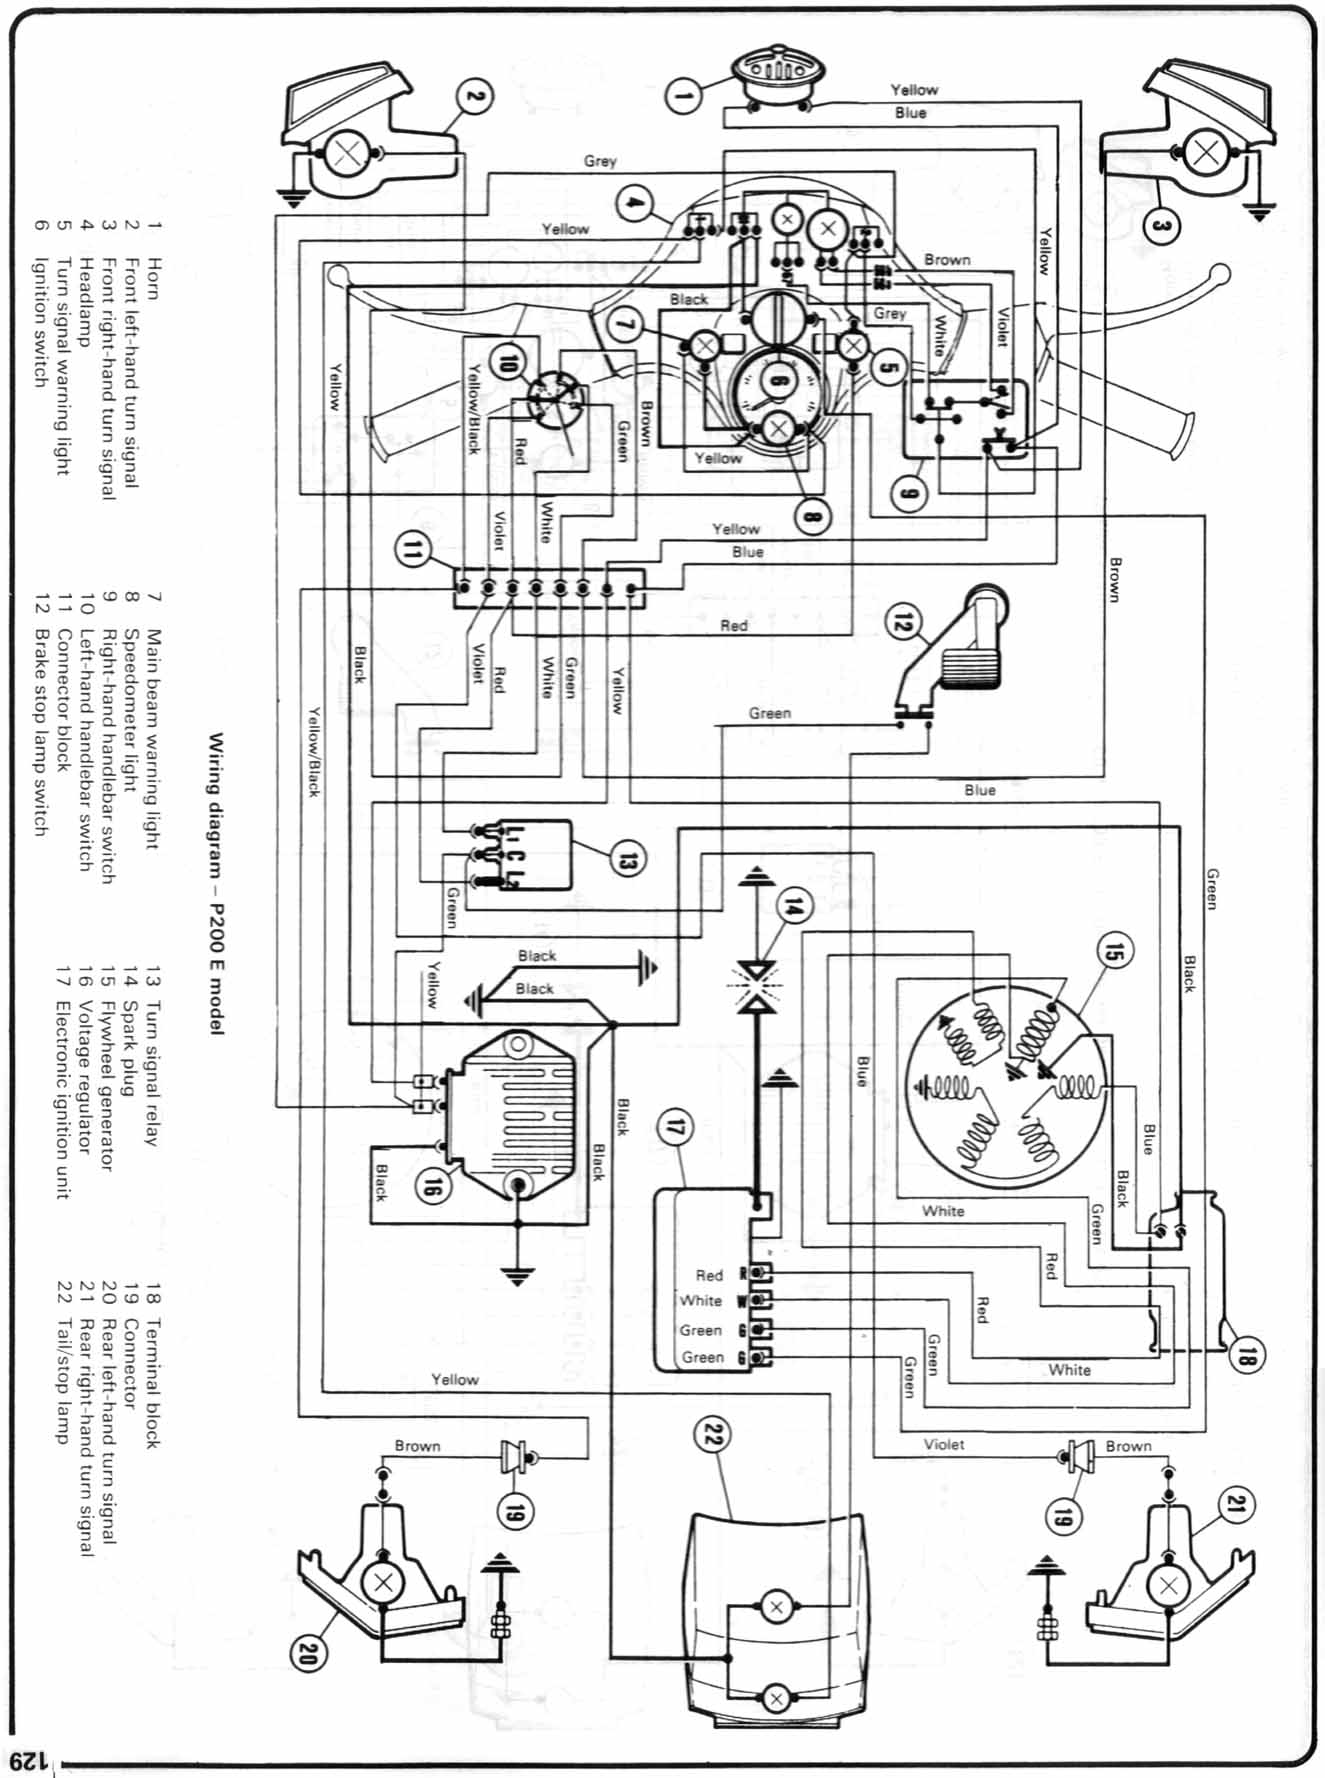 p200diag1 modern vespa seeking advice on an overly ambitious electrical vespa p125x wiring diagram at fashall.co